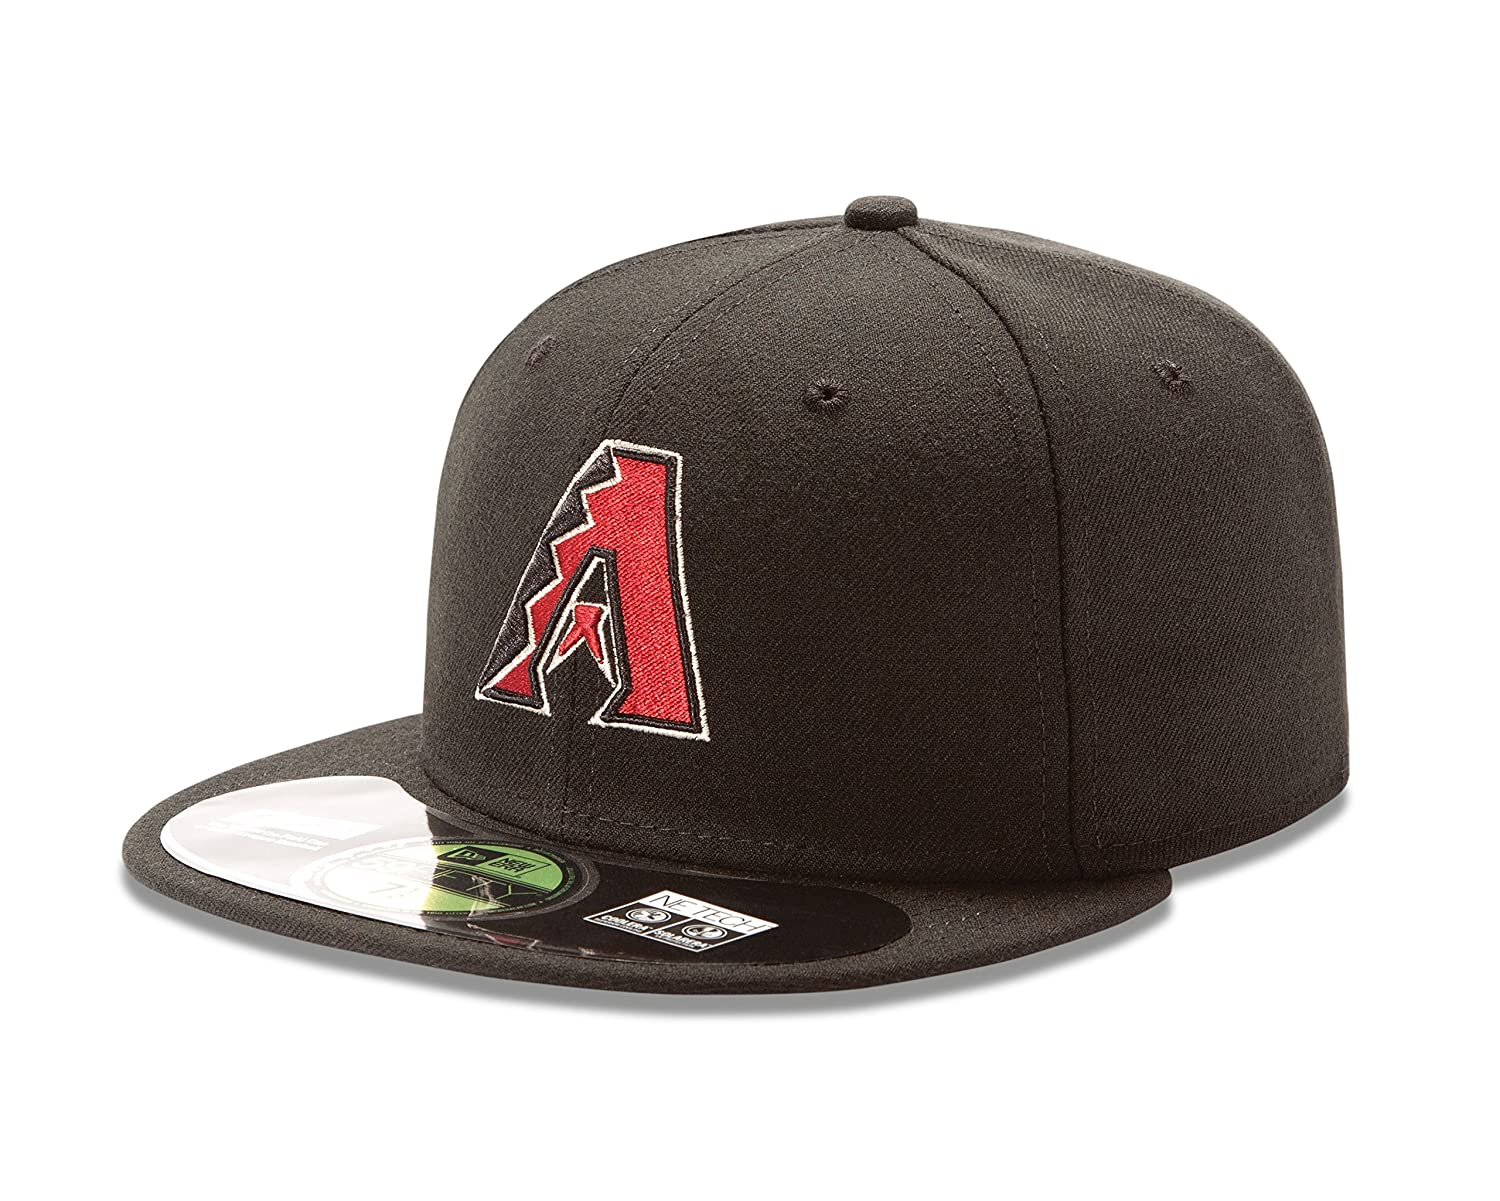 hot sale online 5f4fa 4ccf8 Amazon.com   New Era MLB Game Authentic Collection On Field 59FIFTY Fitted  Cap   Clothing